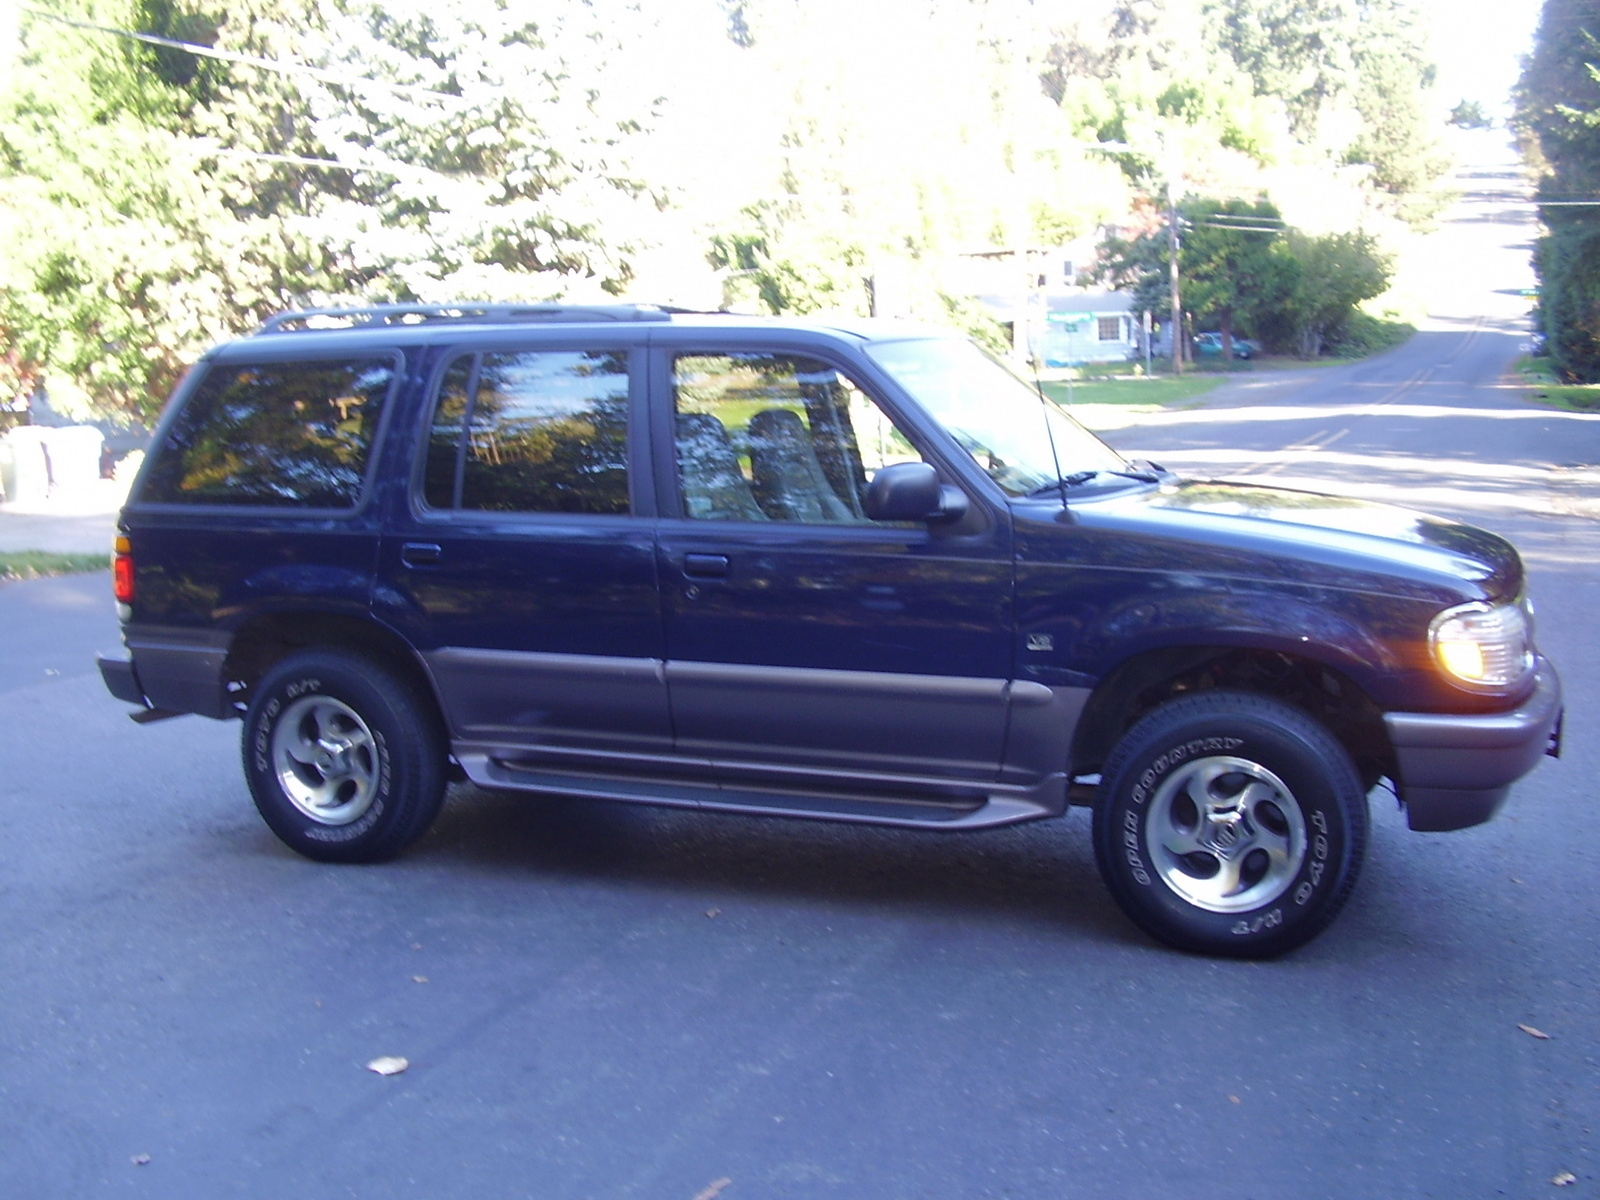 1997 Mercury Mountaineer 4 Dr STD AWD SUV picture